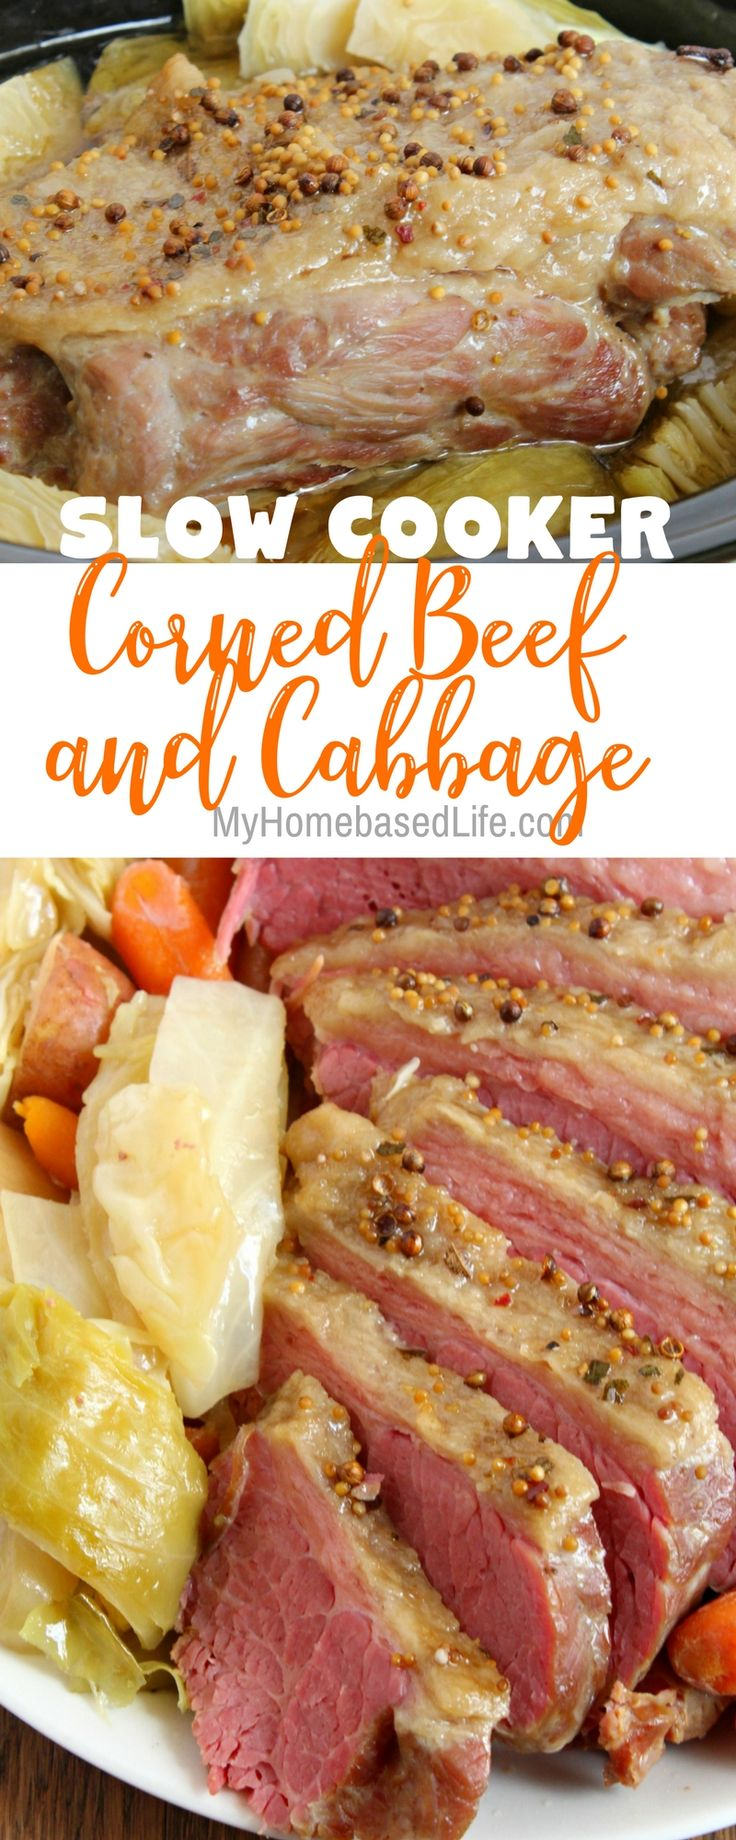 Slow Cooker Corned Beef and Cabbage Recipe   Dinner Recipe   Corned Beef and Cabbage Recipe   #stpatricksday   #cornedbeefandcabbage   St. Patrick's Day Dinner Recipe   Crockpot Recipe   Easy Dinner Recipe    via @myhomebasedlife